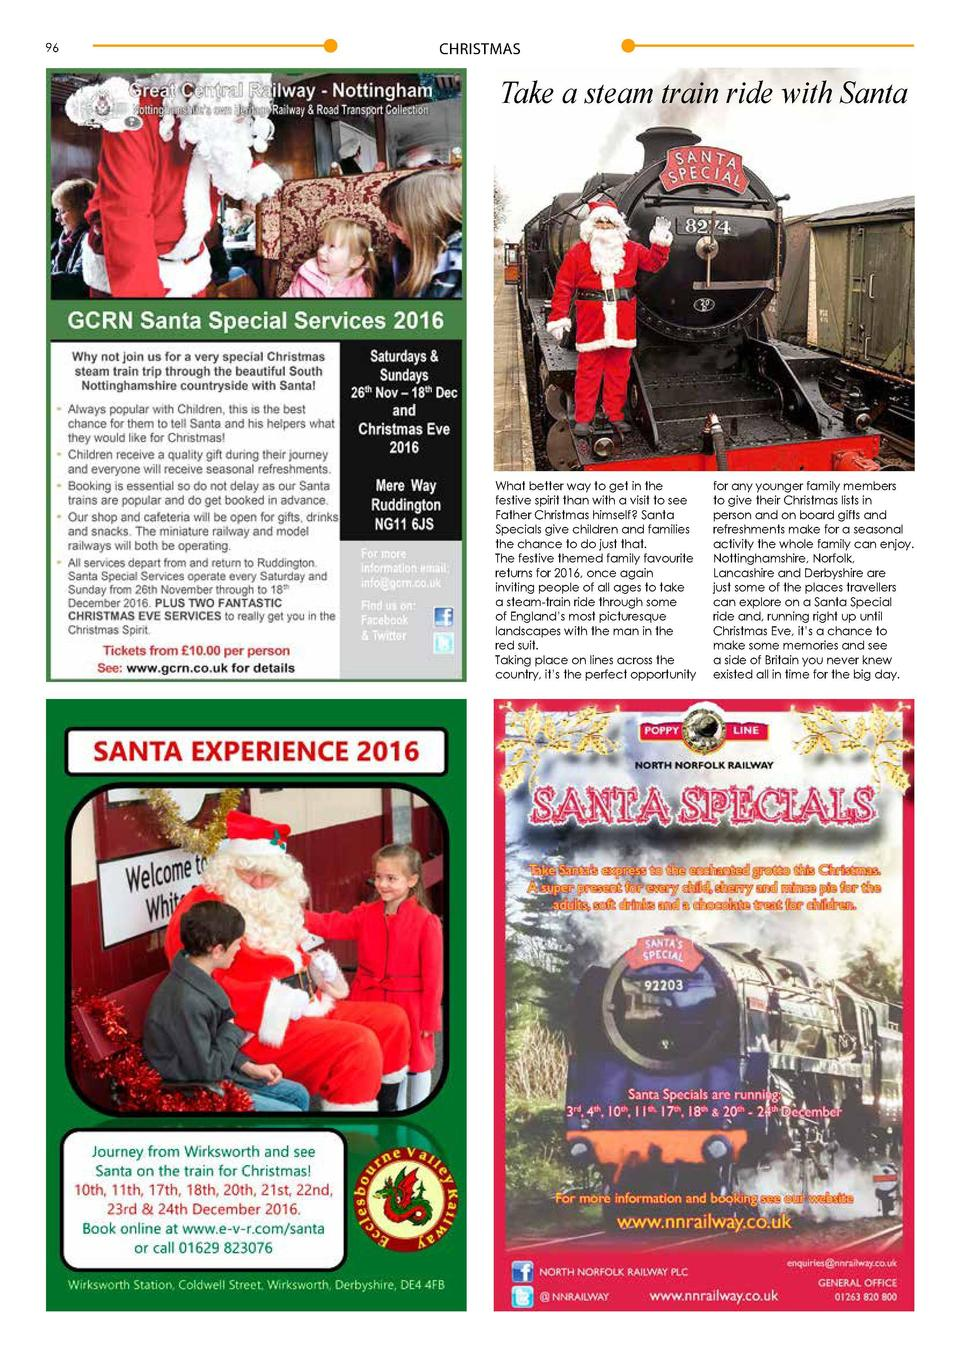 96  CHRISTMAS  CHRISTMAS  Take a steam train ride with Santa  What better way to get in the festive spirit than with a vis...